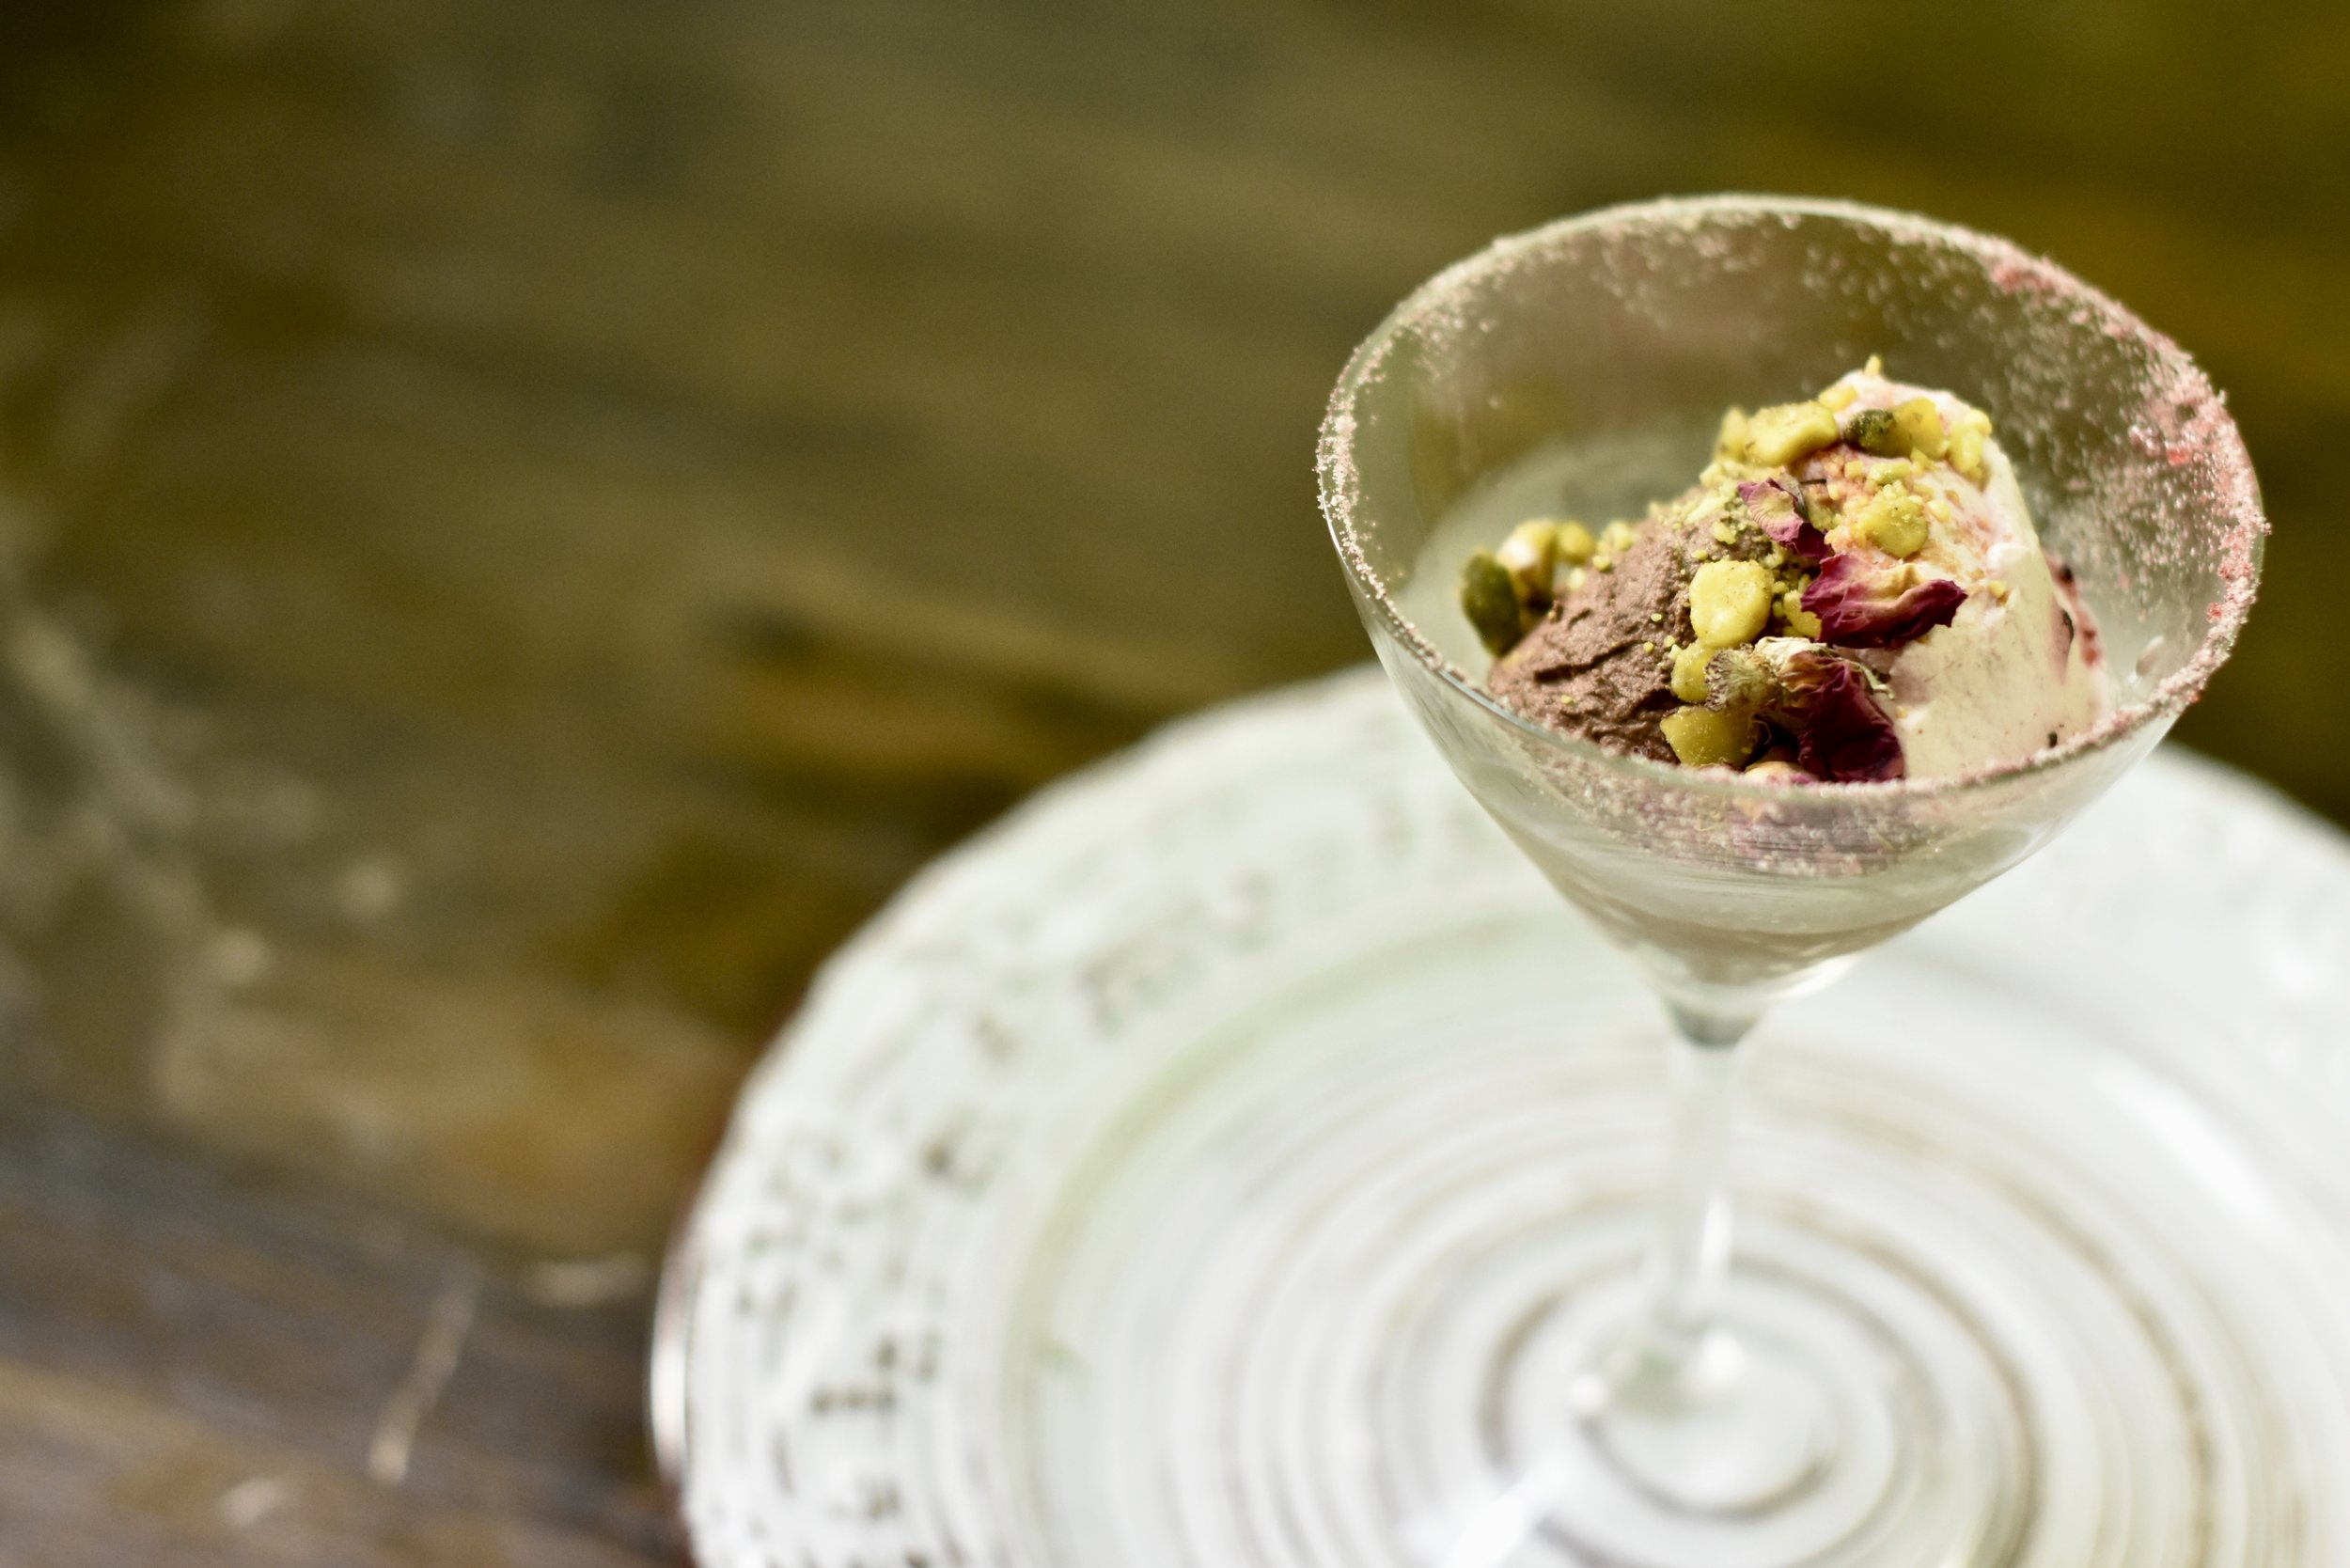 Chocolate Mousse/ Rose-cardamon Whipped Cream/Pistachio Dust